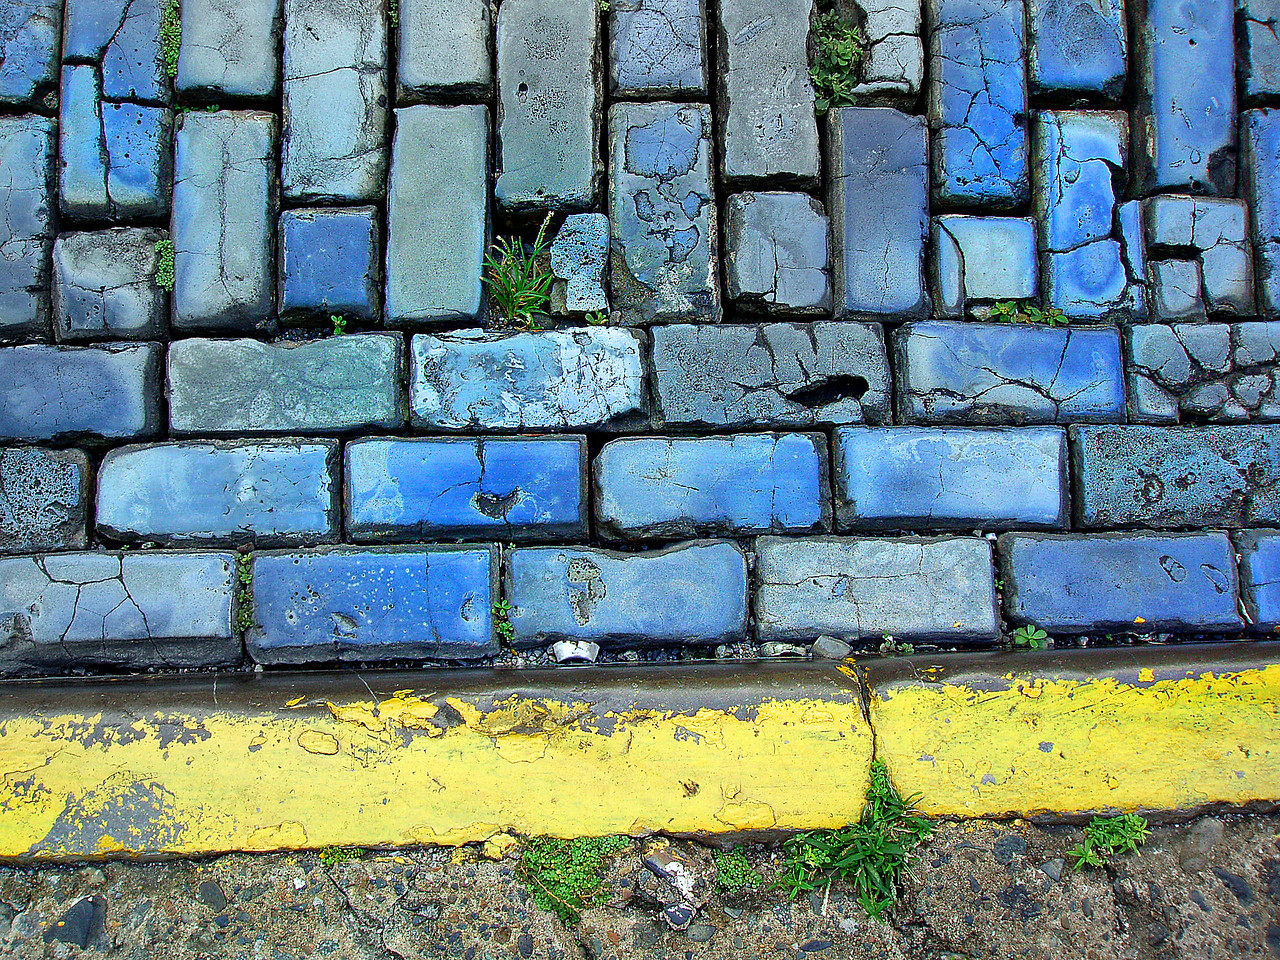 The streets in Old San Juan are blue cobblestones (cast from furnace slag). The cobbles were<br /> used as ballast on the empty Spanish trade ships. The ballast was unloaded when the ships<br /> were filled with sugar cane produced in Puerto Rico.